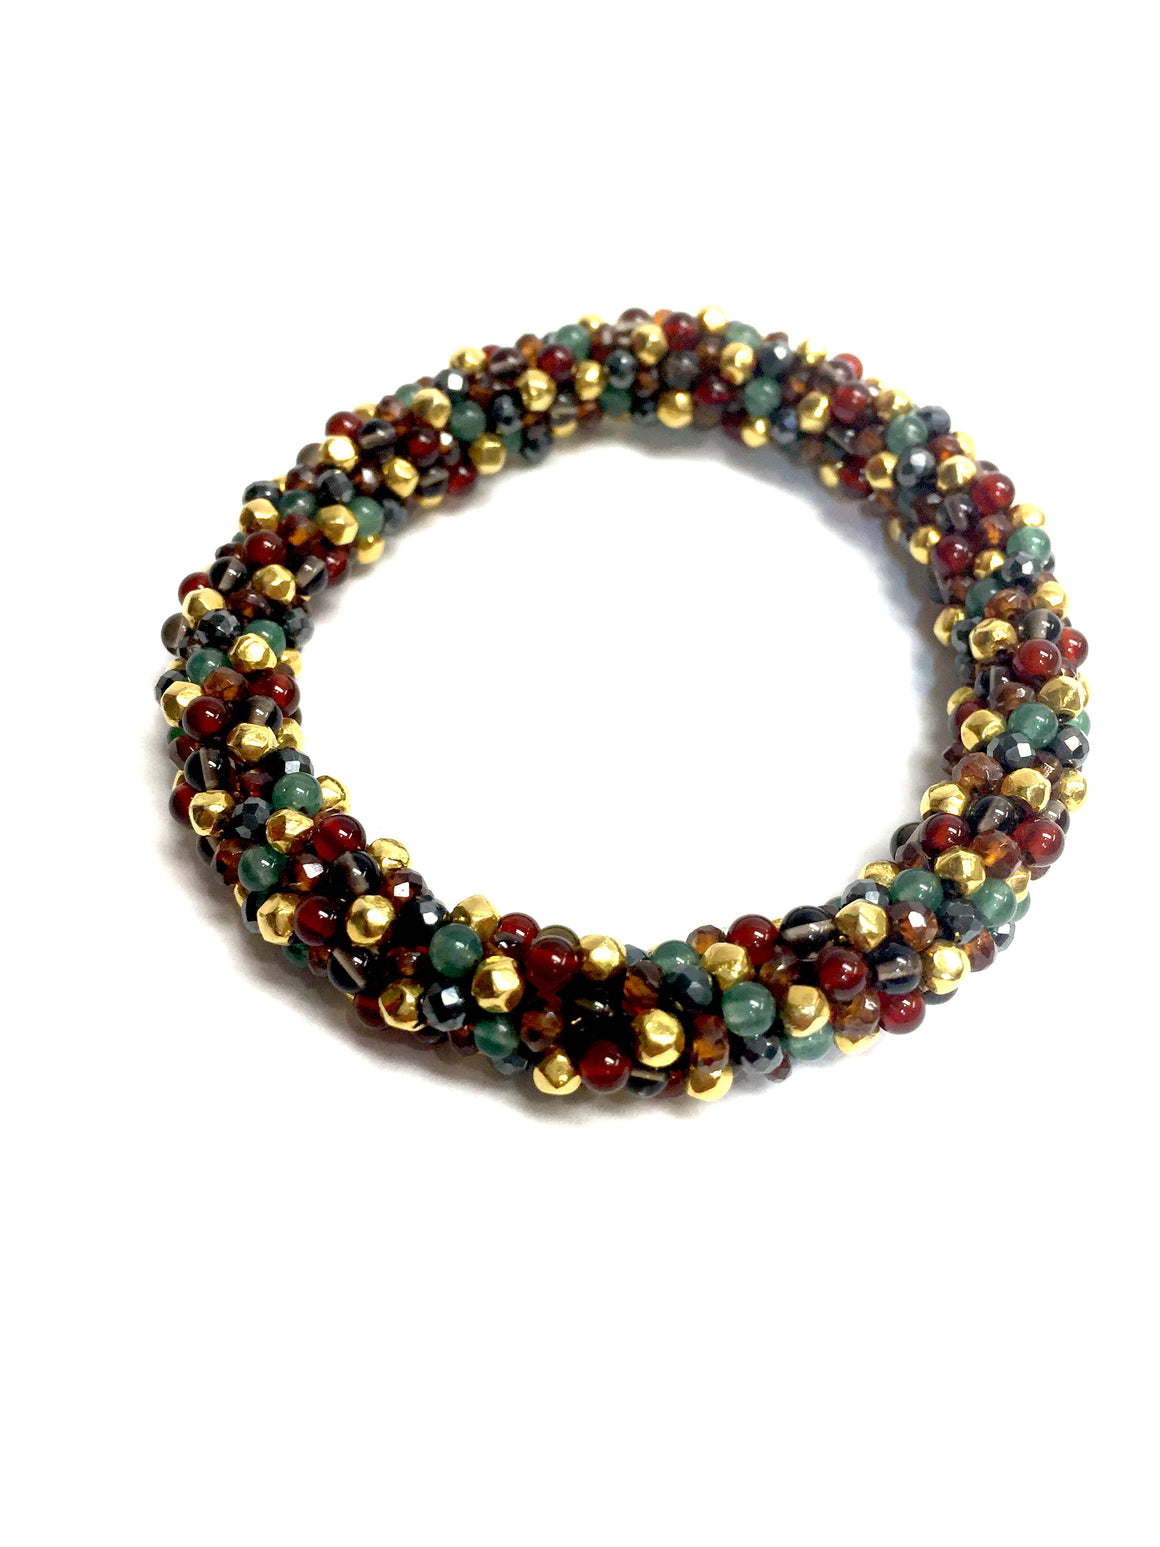 MEREDITH FREDERICK  14K Yellow Gold Garnet Jade Hematite Beads Roll-On Bracelet